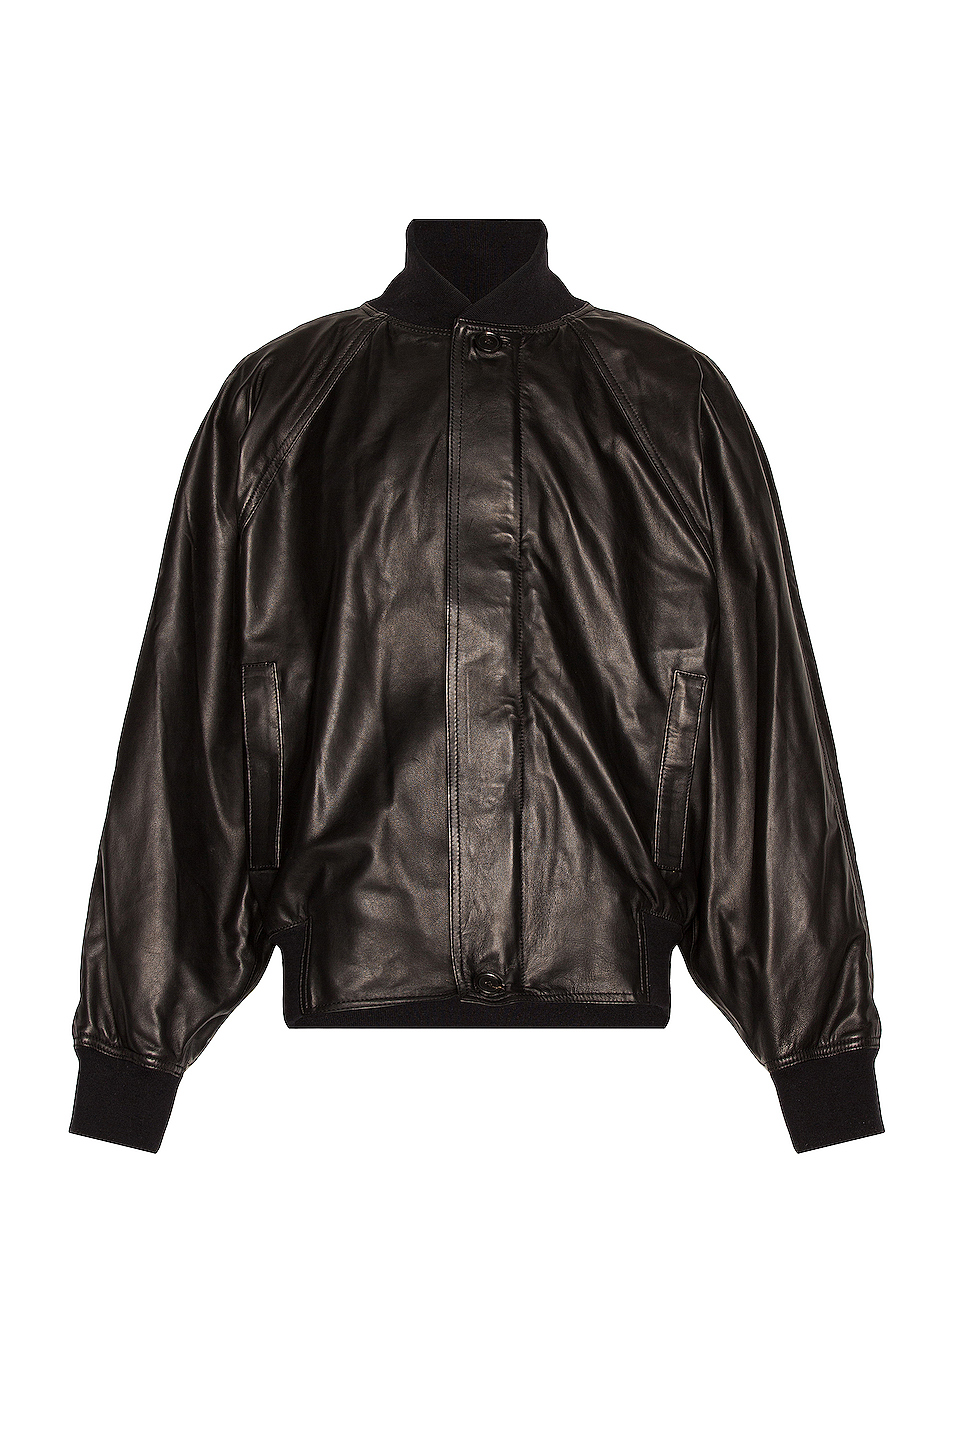 Fear of God Leather Bomber